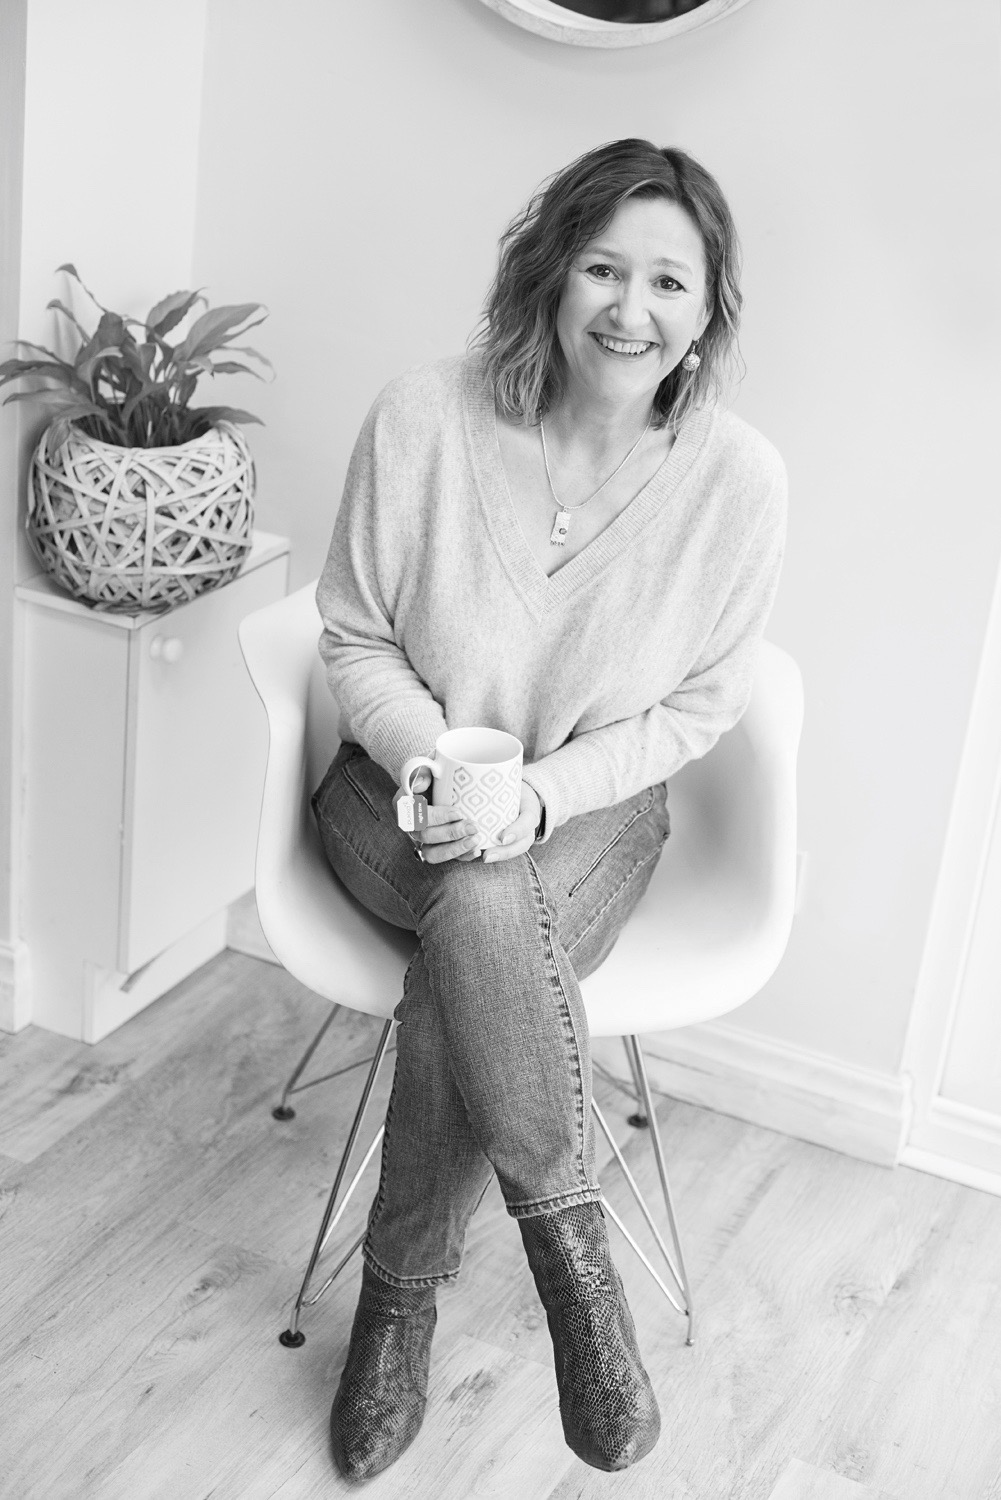 Hello, I'm Philippa Bottrill and welcome to my website